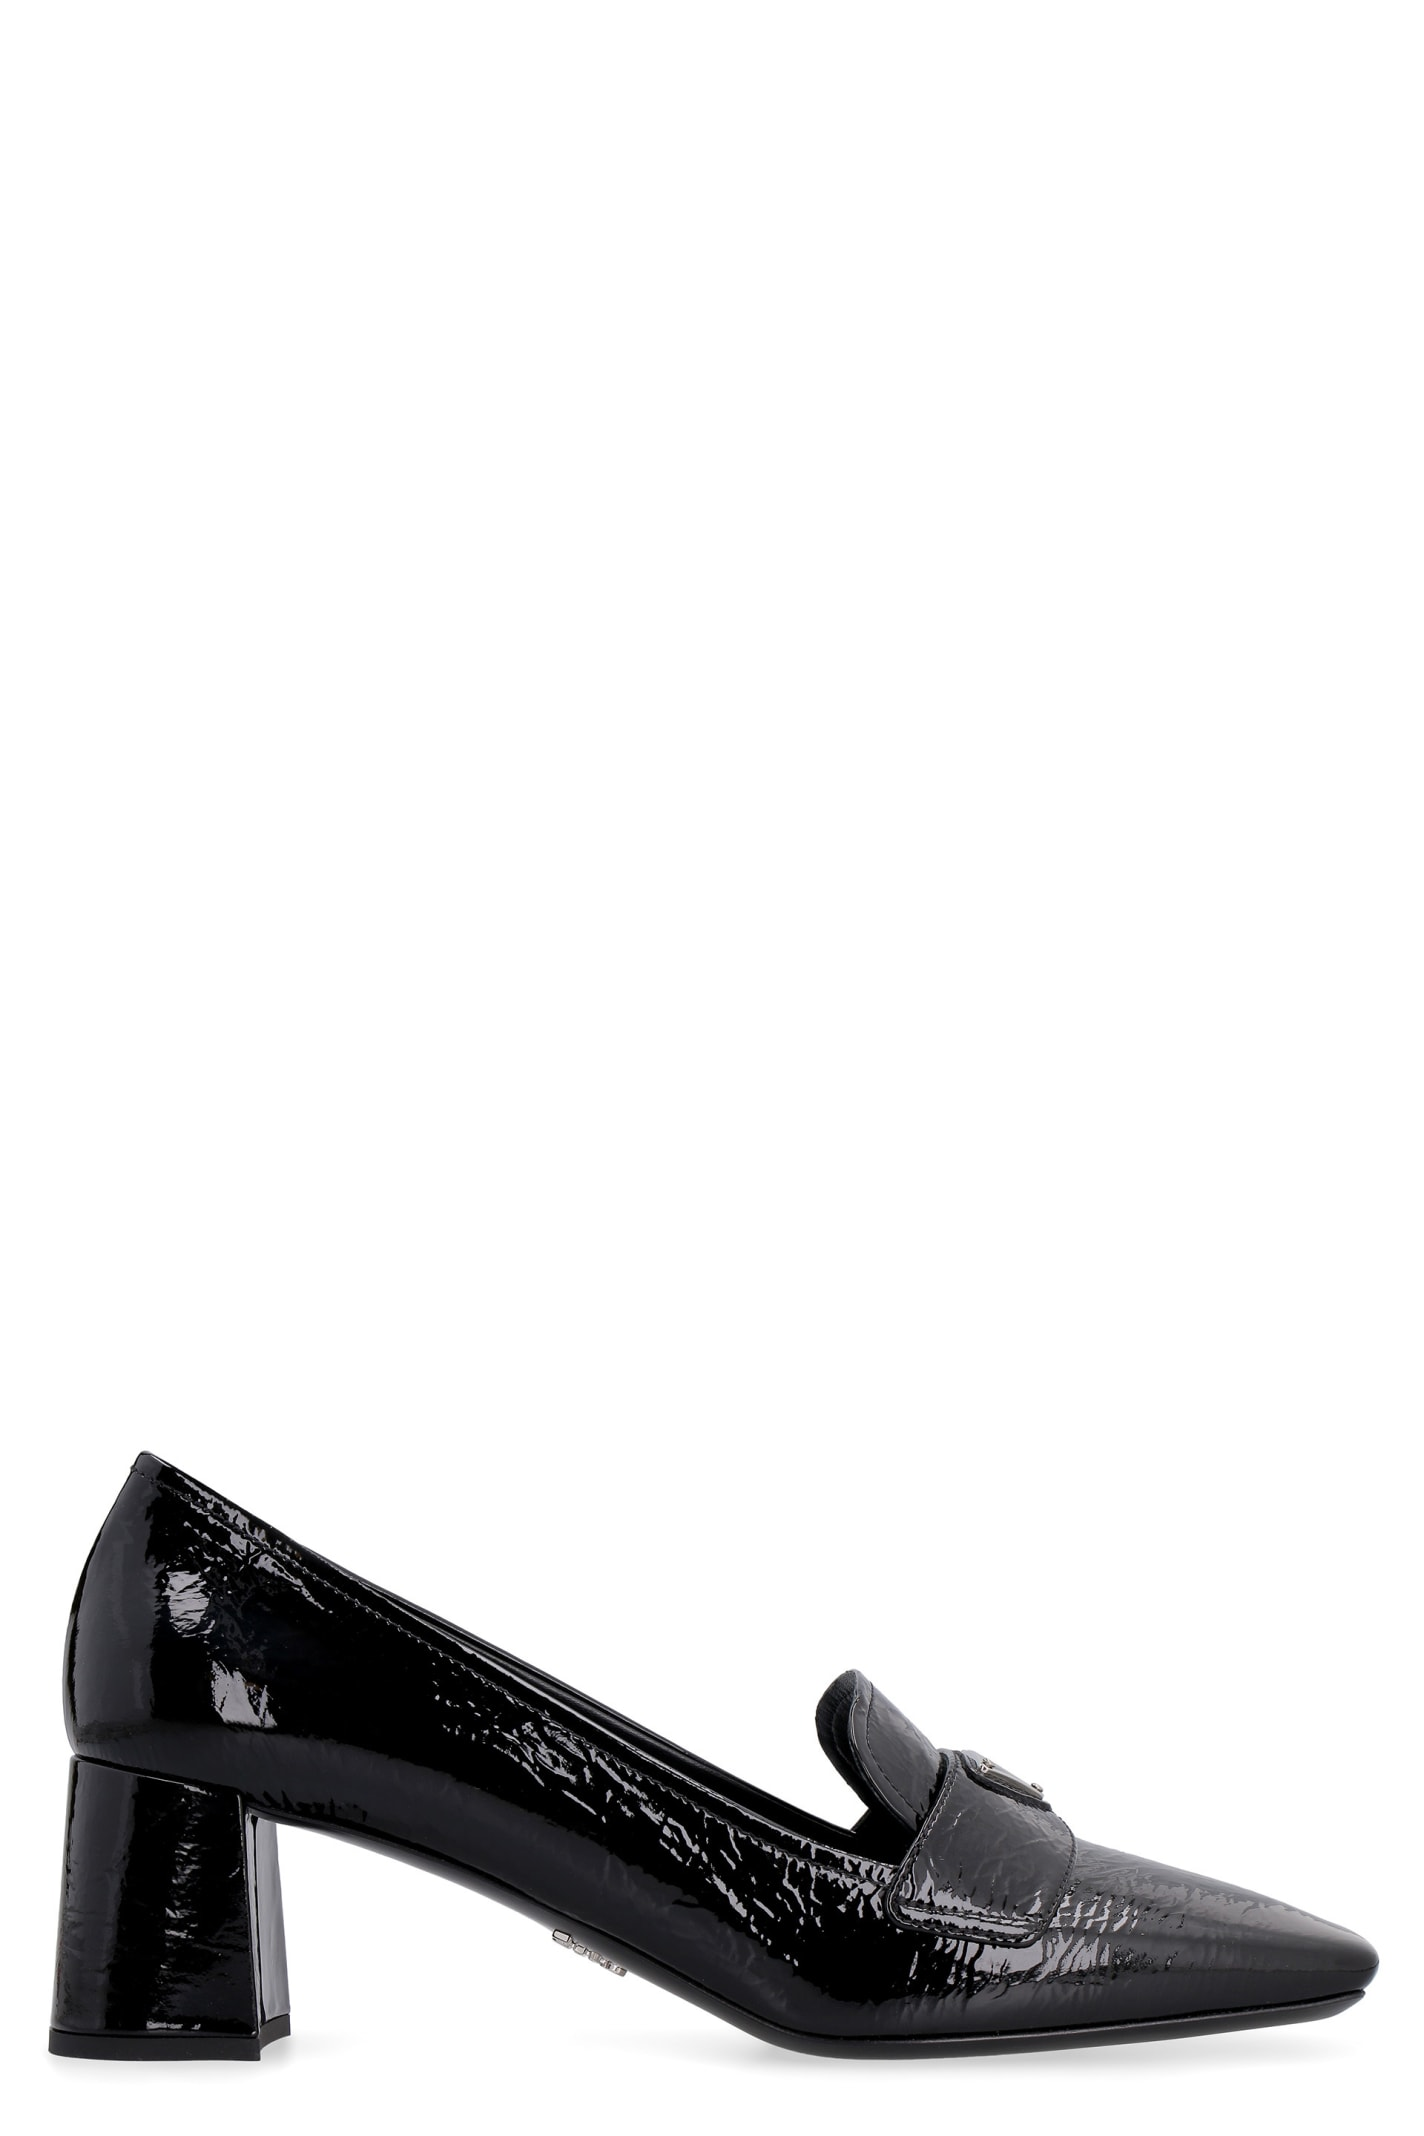 Prada Patent Leather Heeled Loafers In Black